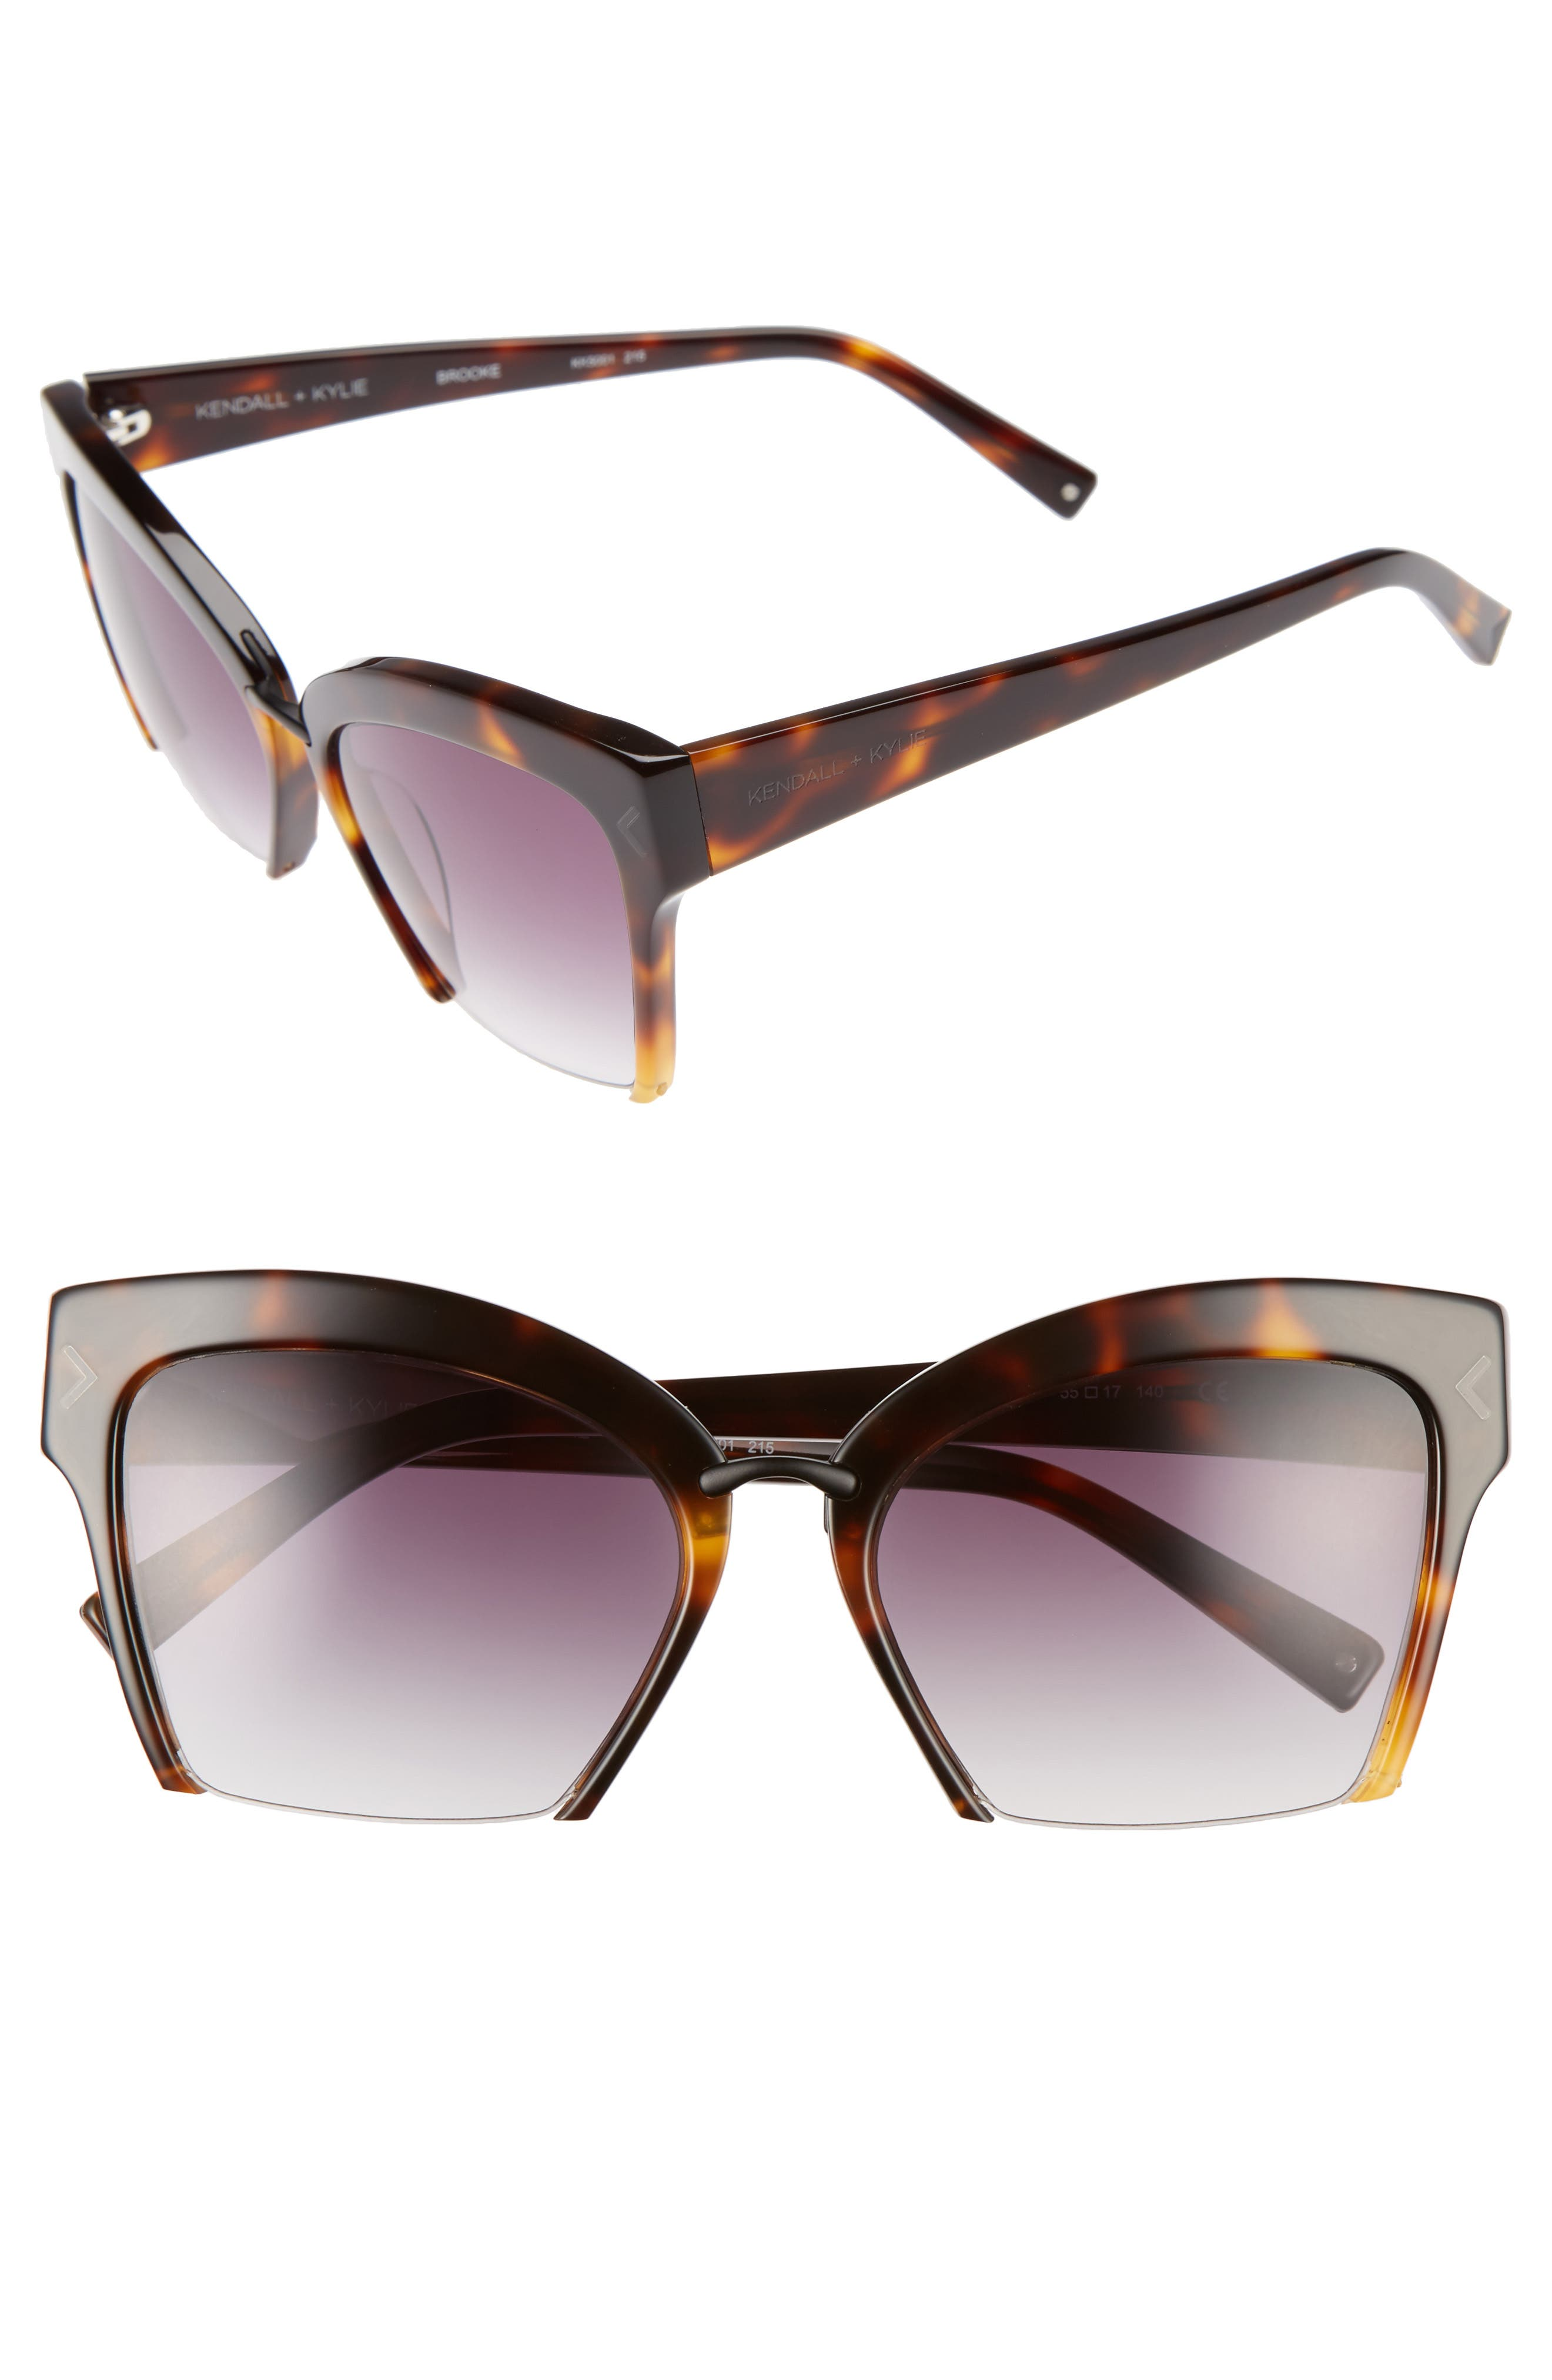 Main Image - KENDALL + KYLIE Brooke 55mm Semi Rimless Butterfly Sunglasses